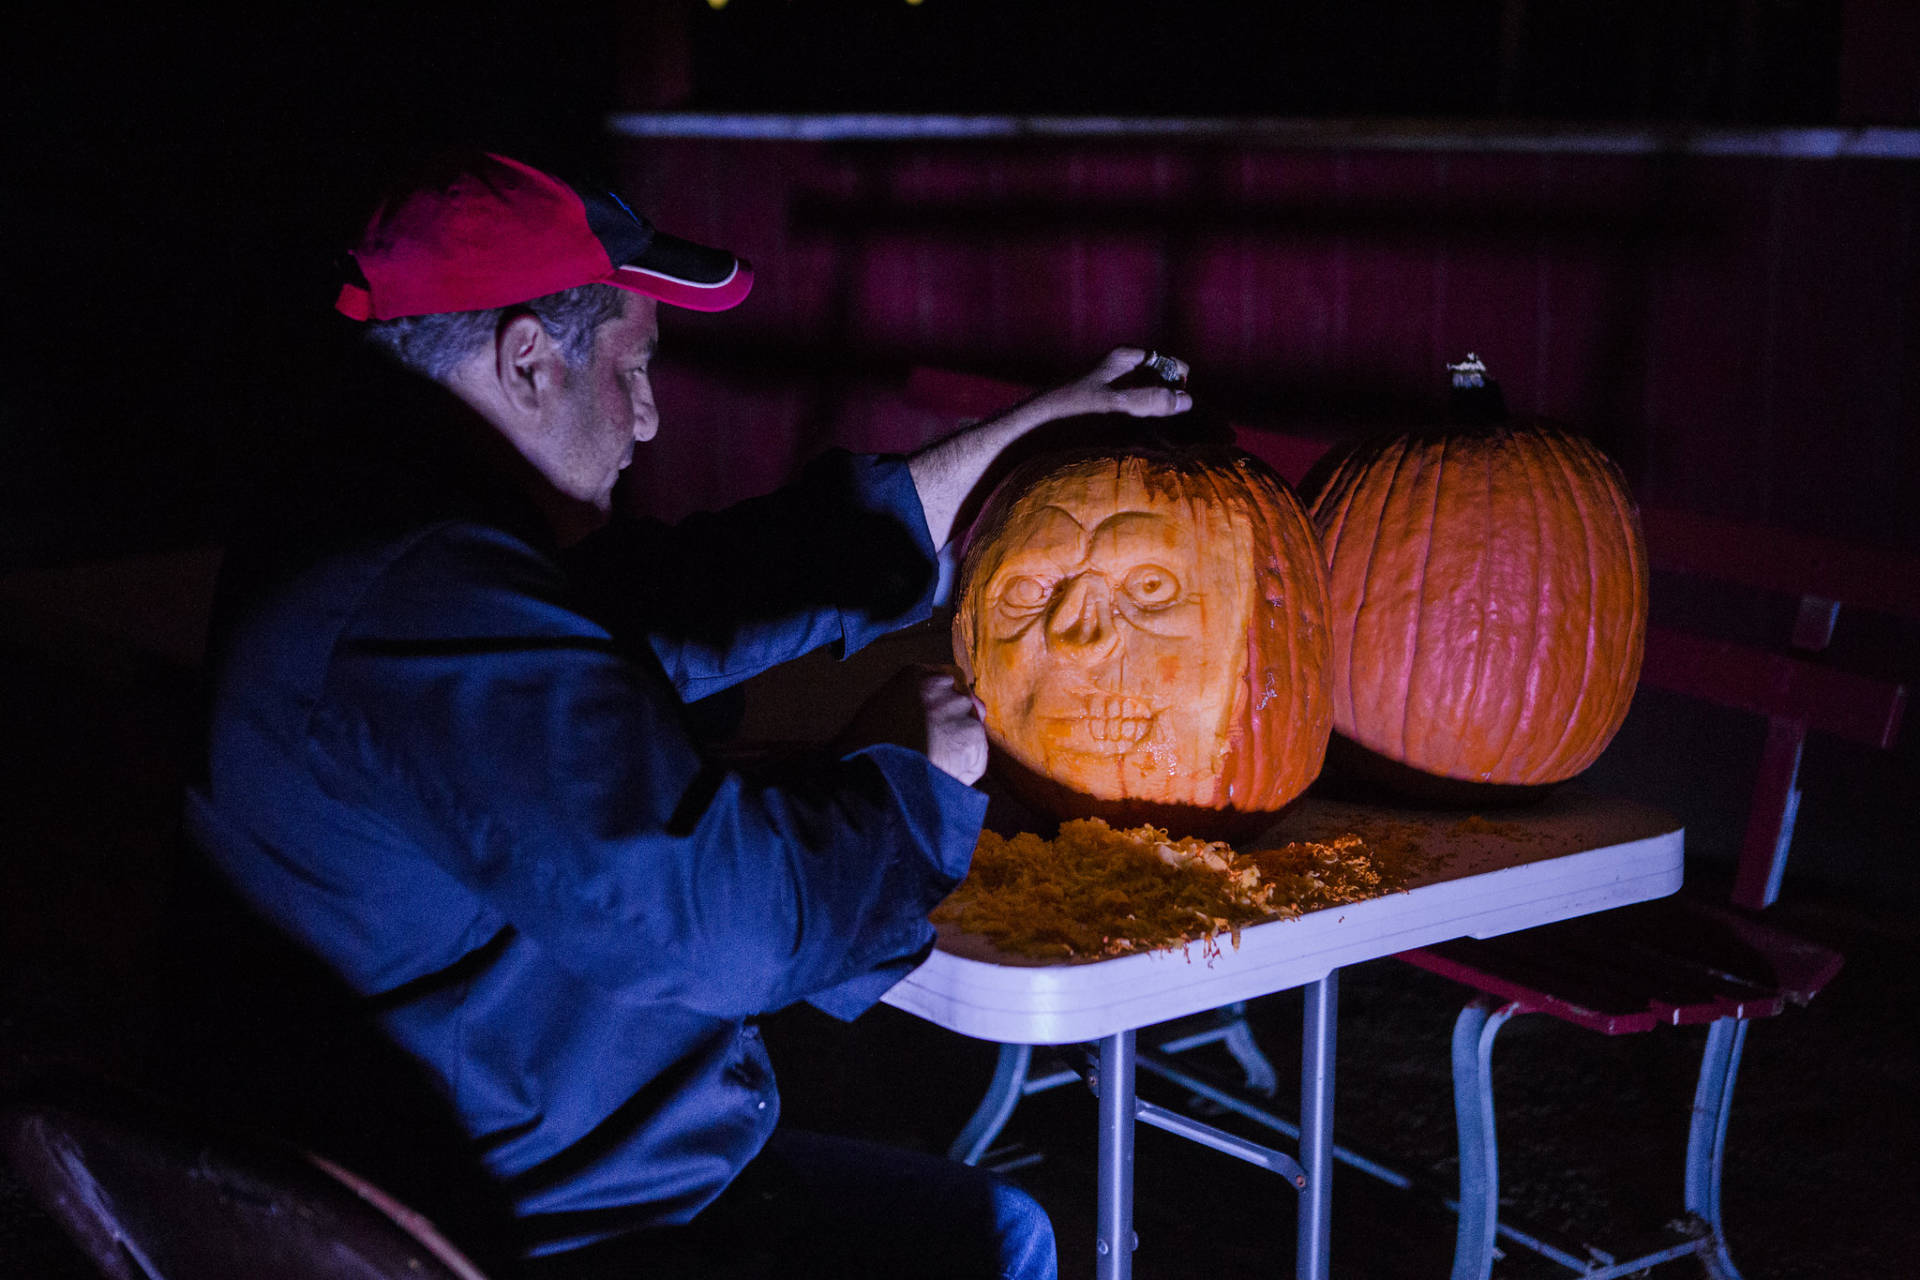 Pumpkin Nights: the highly anticipated Most Delightful Halloween Tradition! Pumpkin Nights captures the essence of Halloween through eight immersive lands created with over 3,000 hand-carved pumpkins.